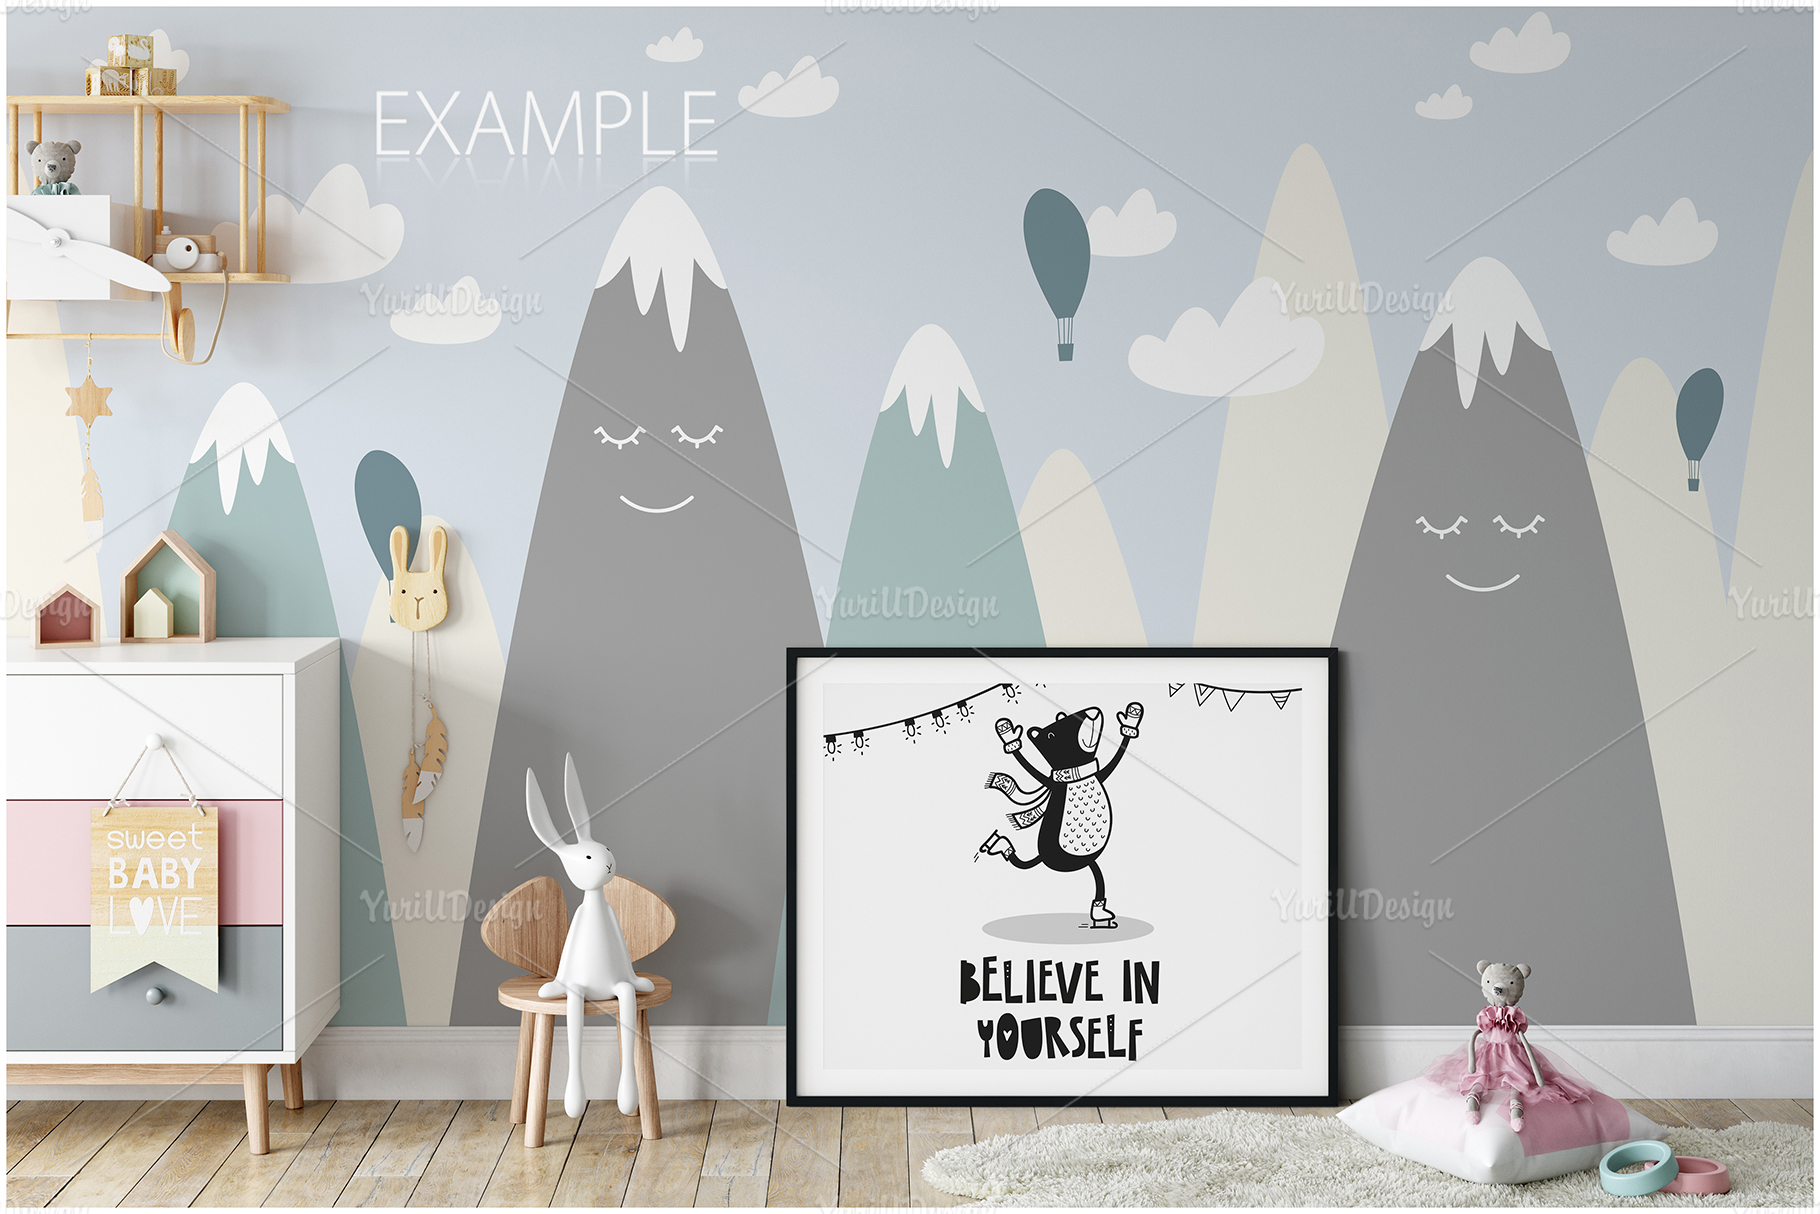 Kids Frames & Wall Mockup Bundle - 5 example image 26